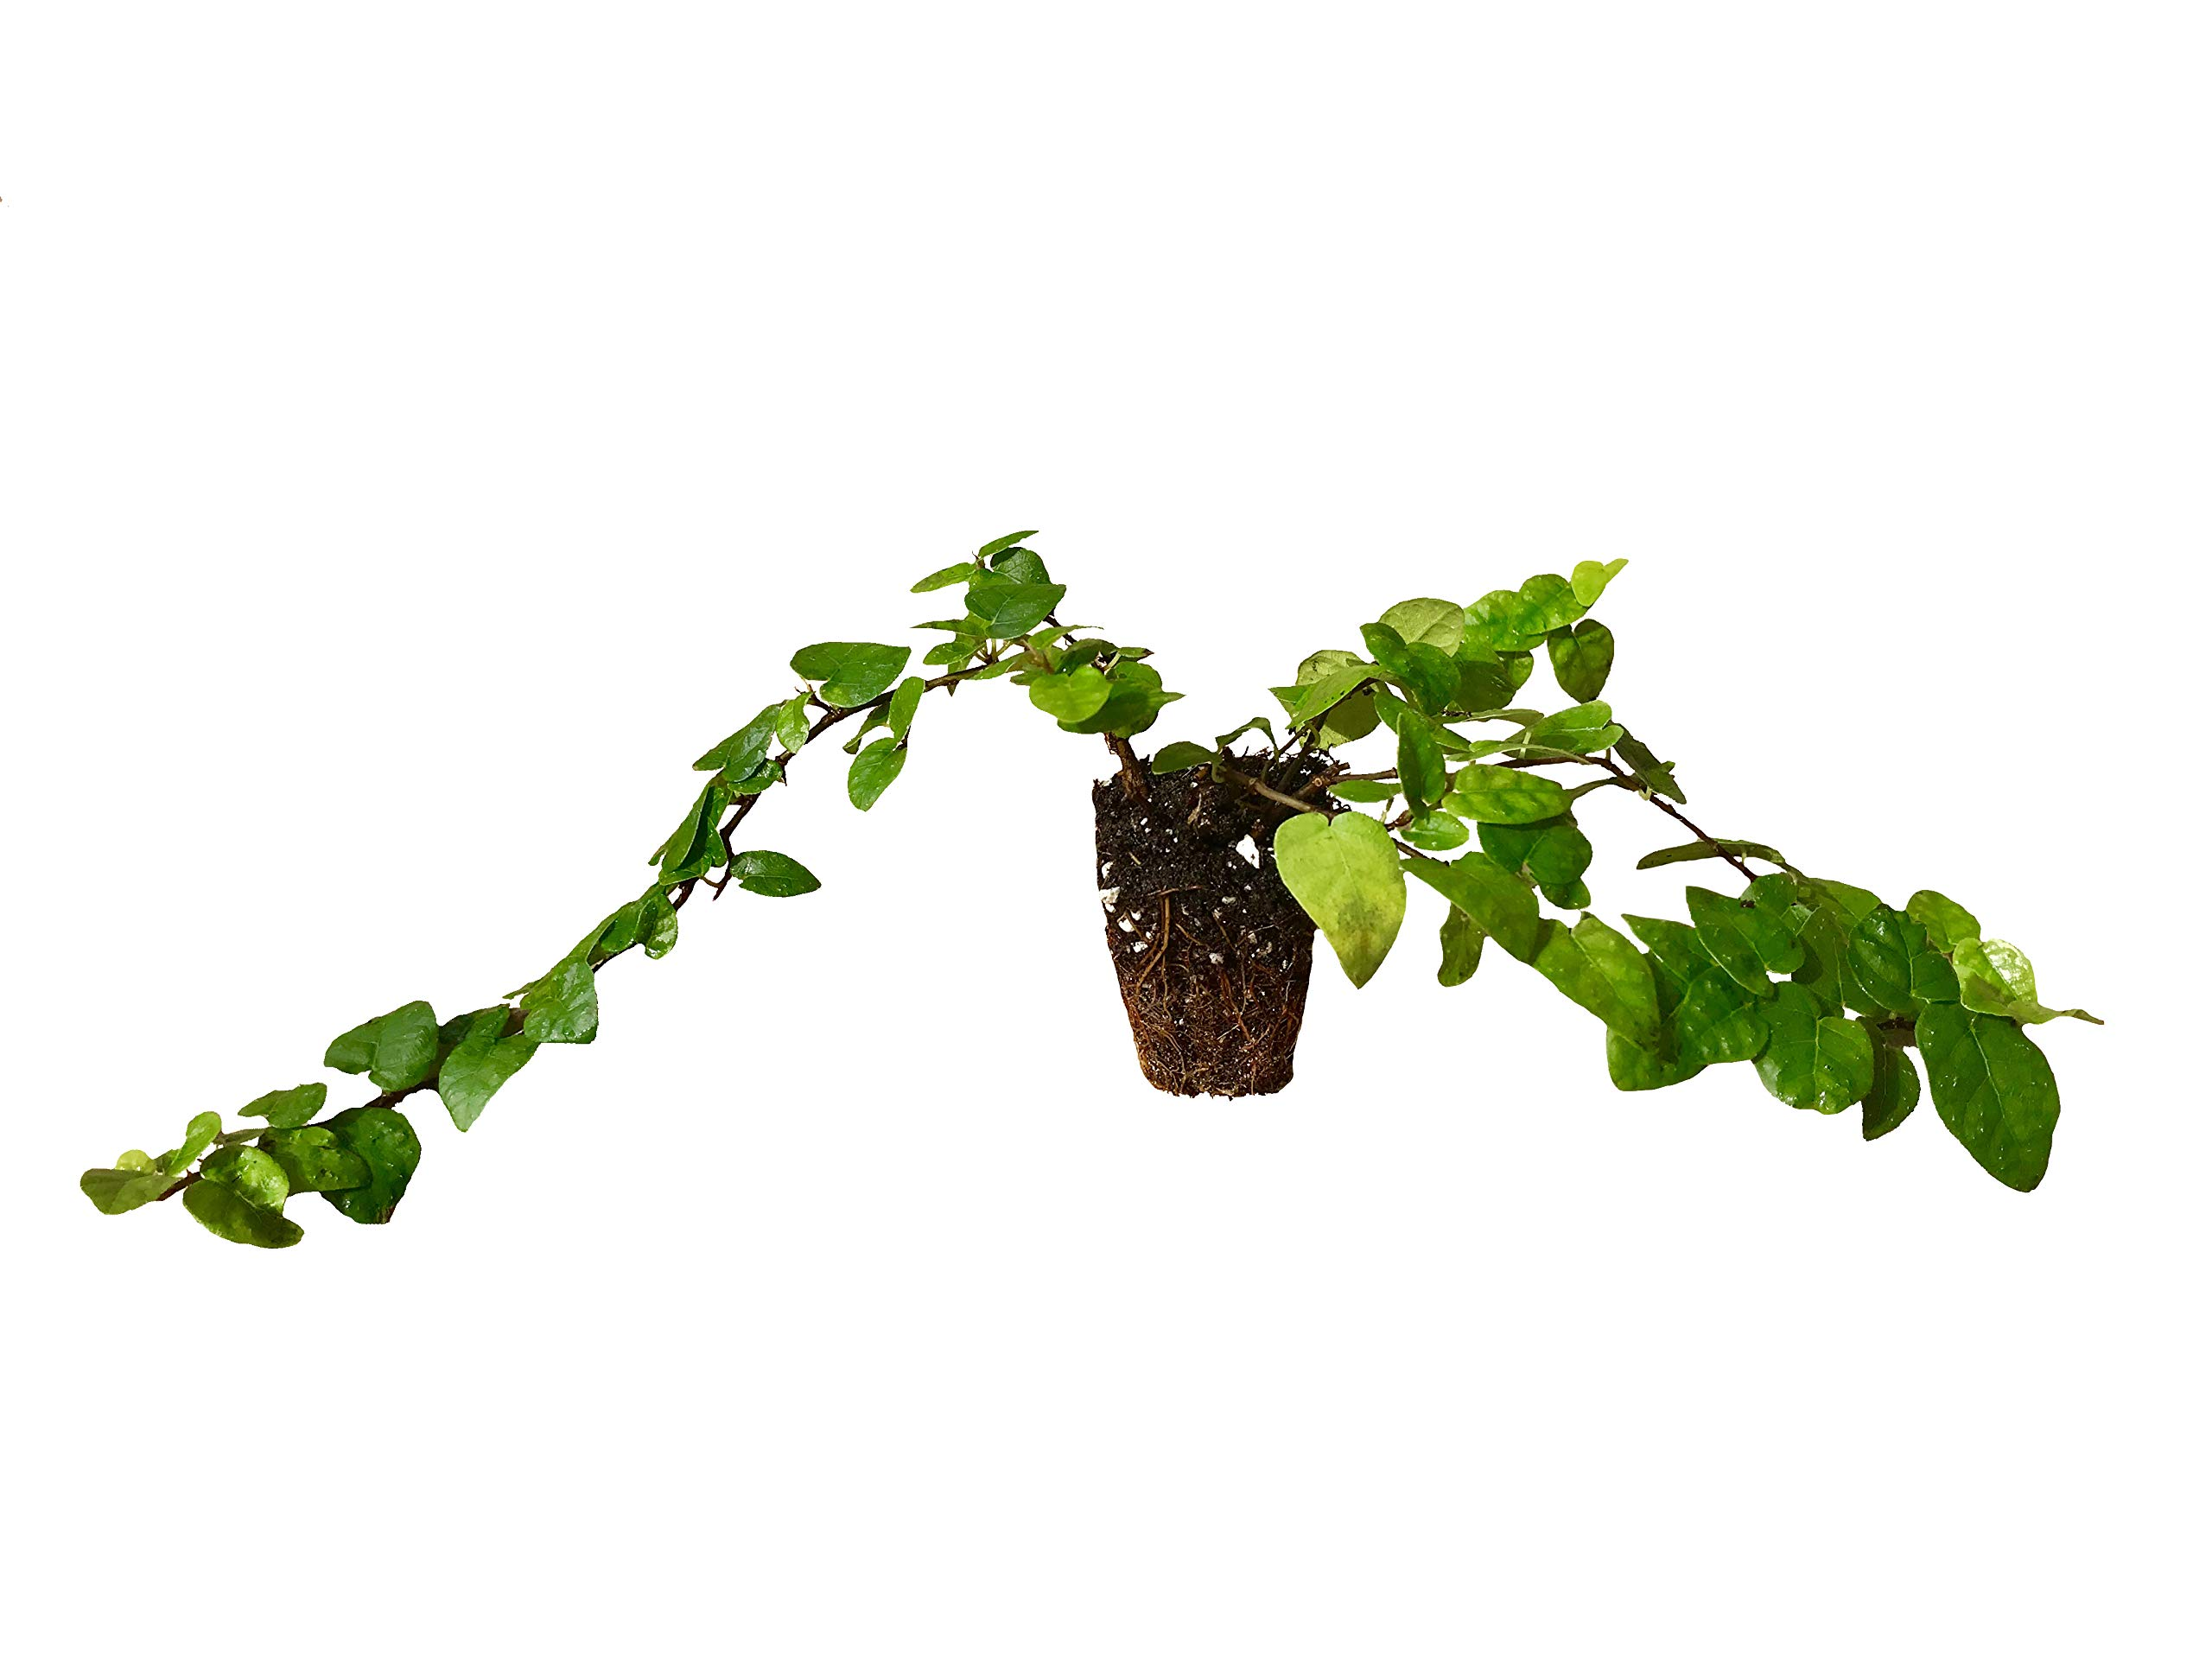 Creeping Fig Vine - Ficus Pumila - 10 Live Fully Rooted Plants - Climbing Ivy by Florida Foliage (Image #1)